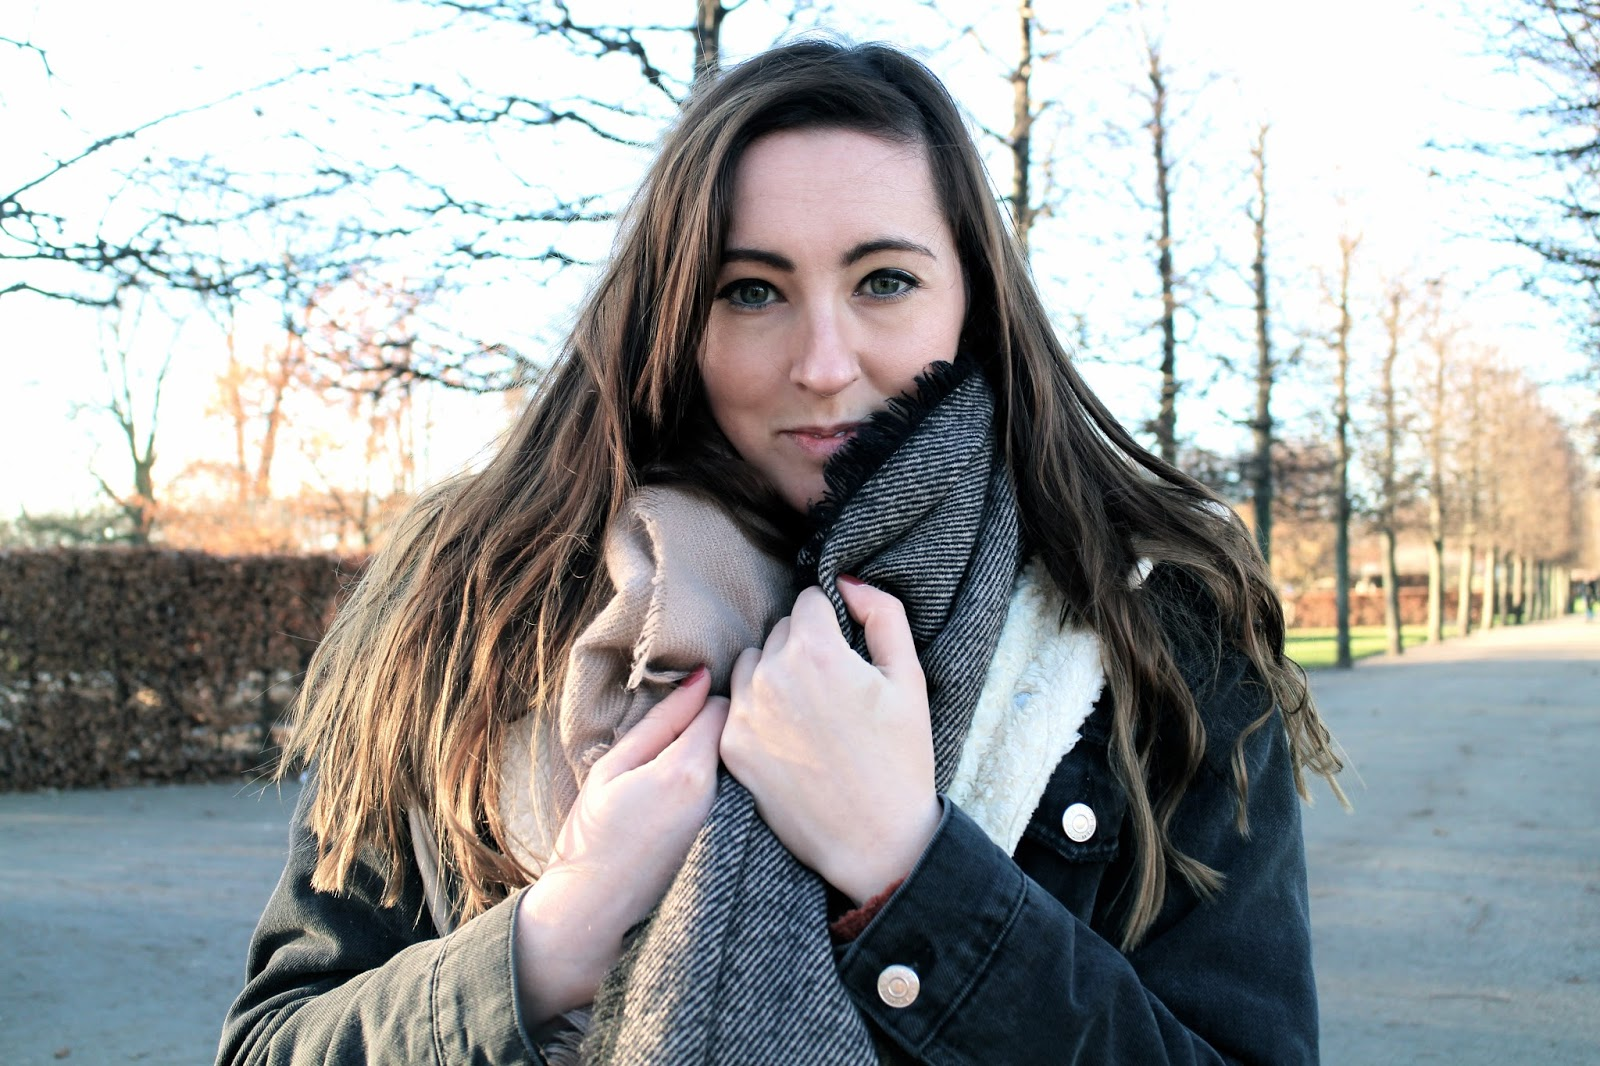 The Dress Diaries - Cosy blanket scarf from H&M and denim jacket from Topshop